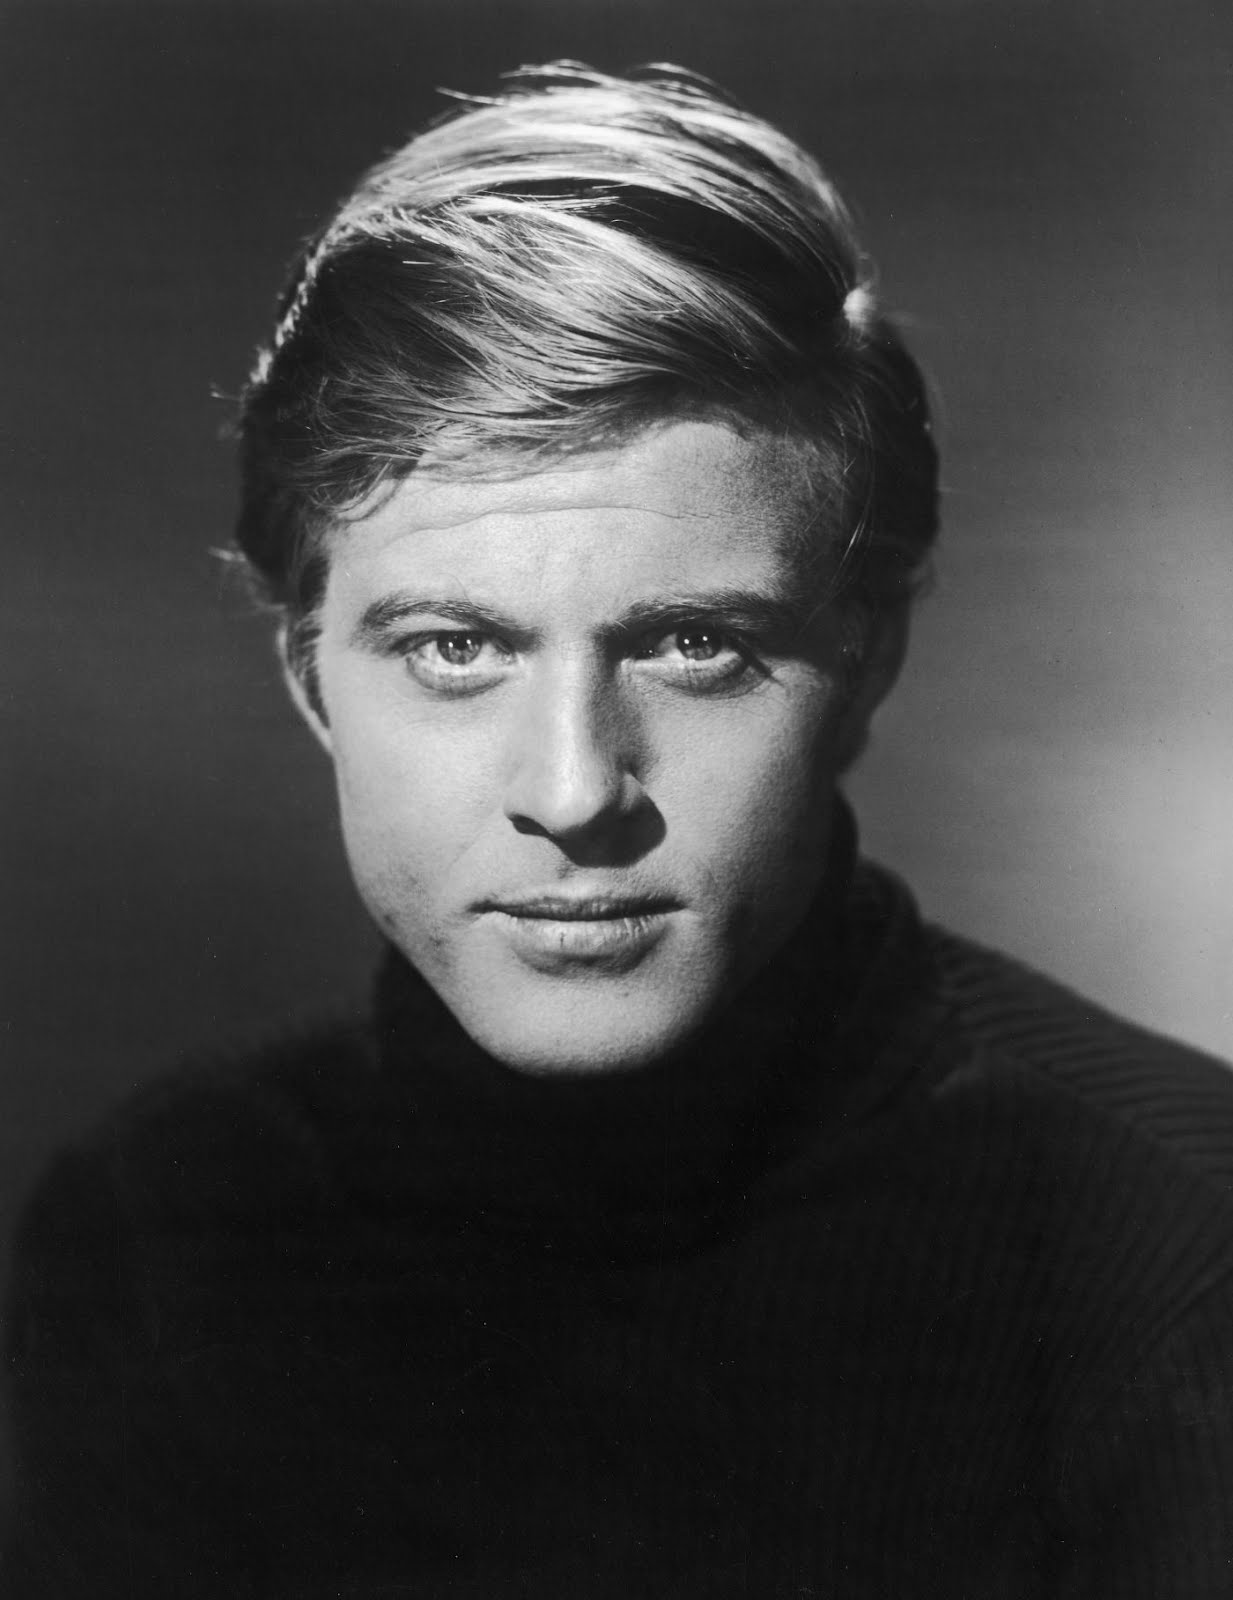 http://2.bp.blogspot.com/-0Vwg-YENO_Y/TzKZmxM2OUI/AAAAAAAABsA/l5dW-So3vKM/s1600/robert-redford-background-3-786925.jpg